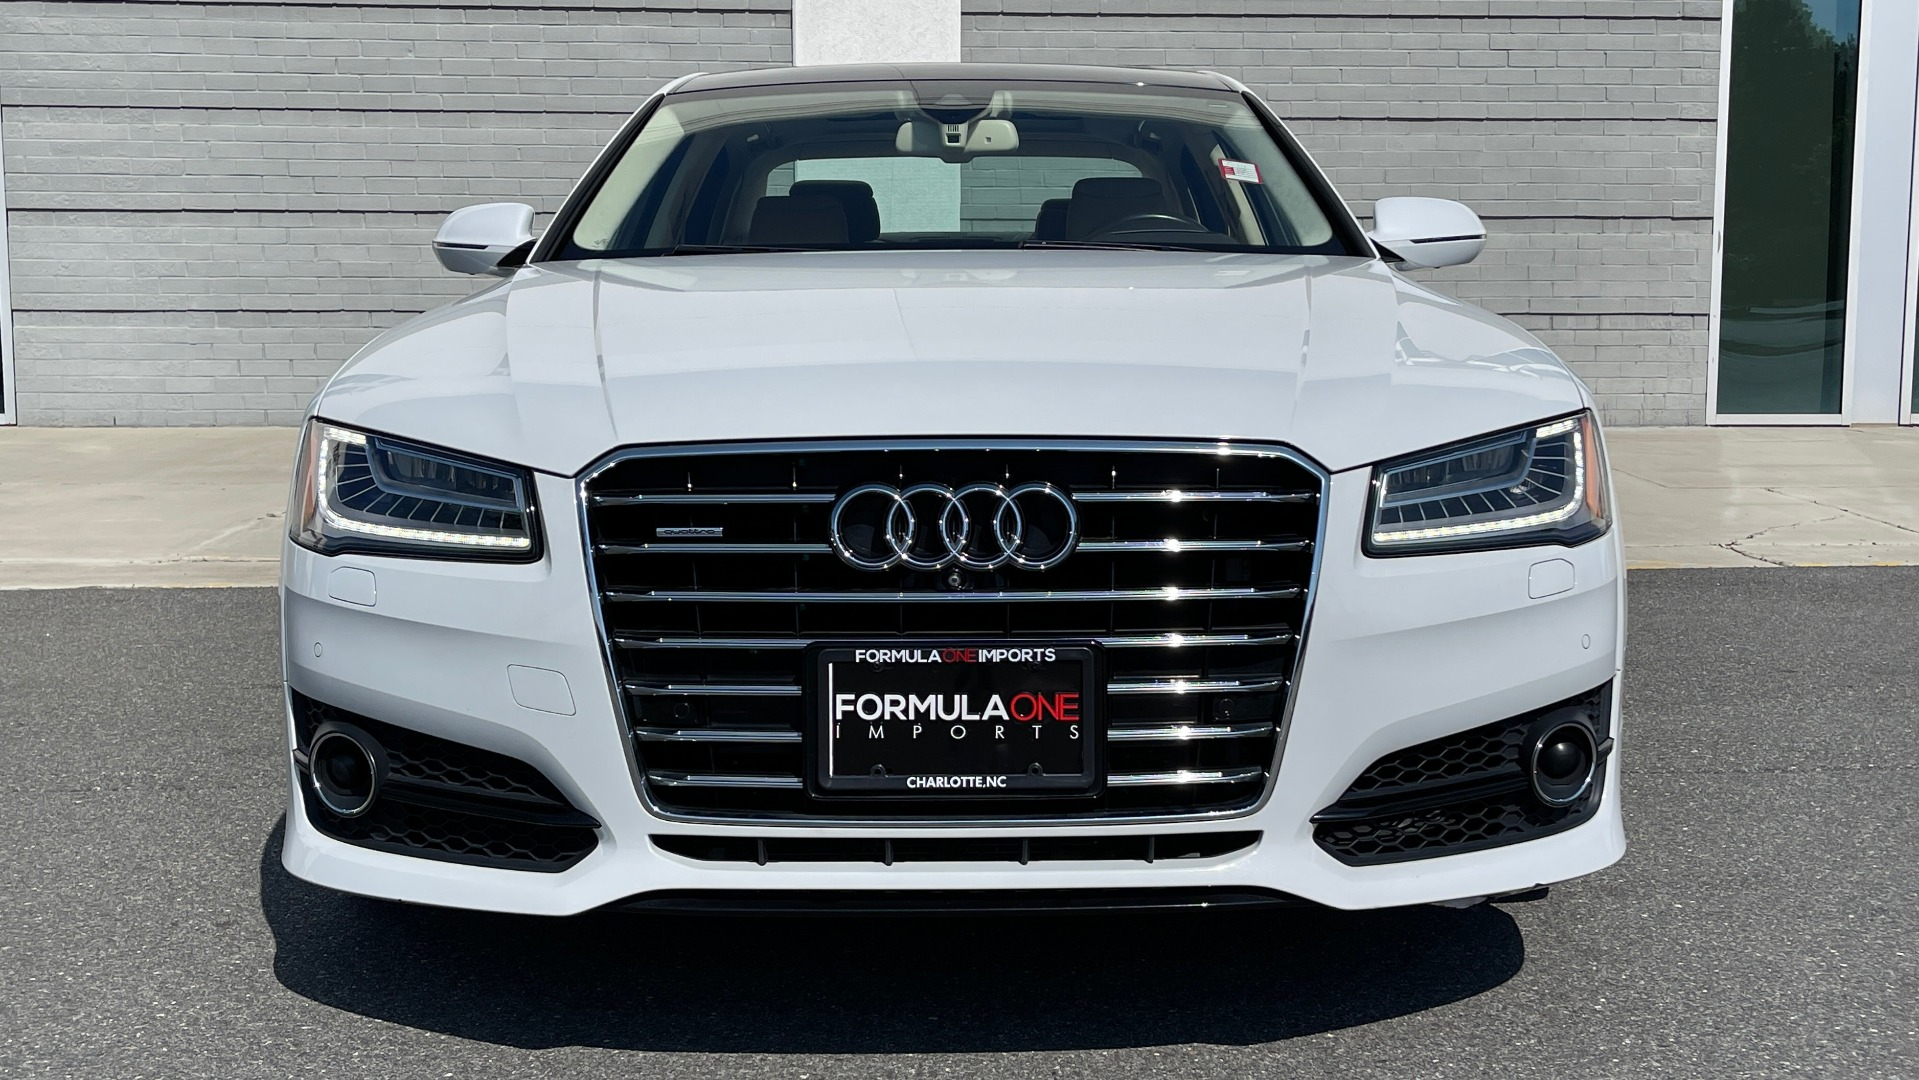 Used 2018 Audi A8 L SPORT 4.0T / EXECUTIVE PKG / NAV / BOSE / SUNROOF / REARVIEW for sale Sold at Formula Imports in Charlotte NC 28227 14